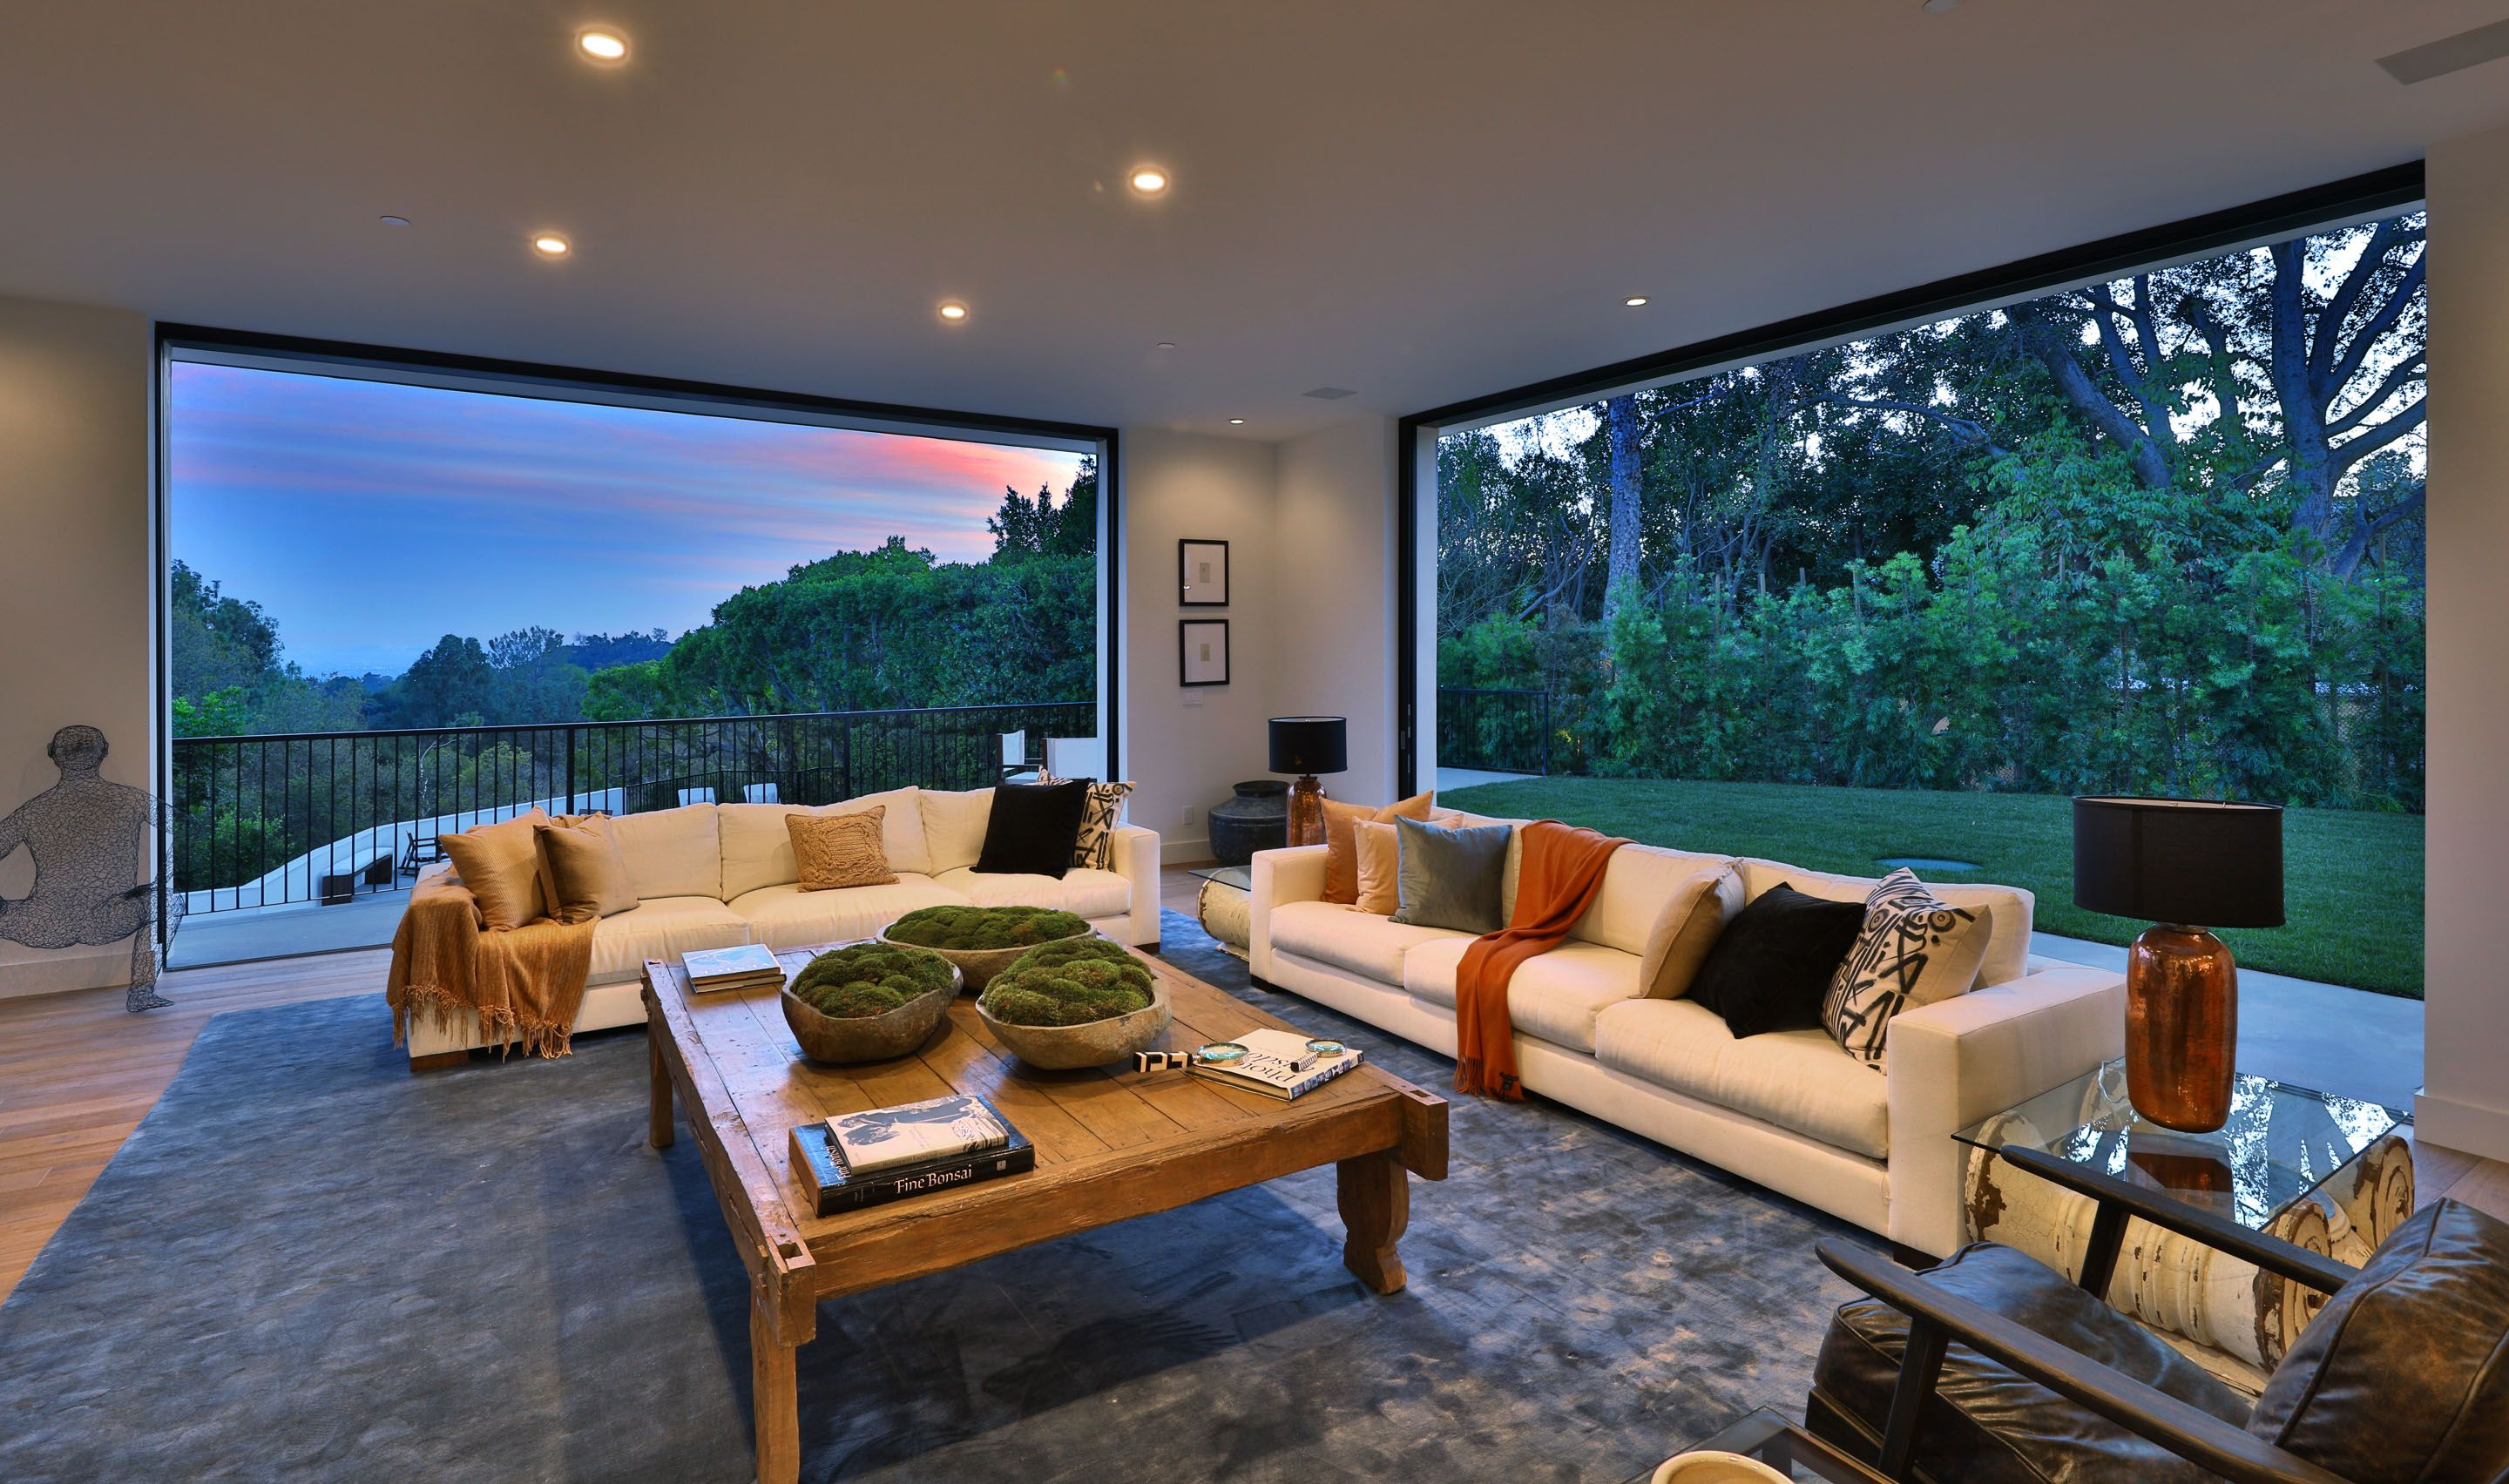 Modern luxury living room with view (With images) | Luxury ...